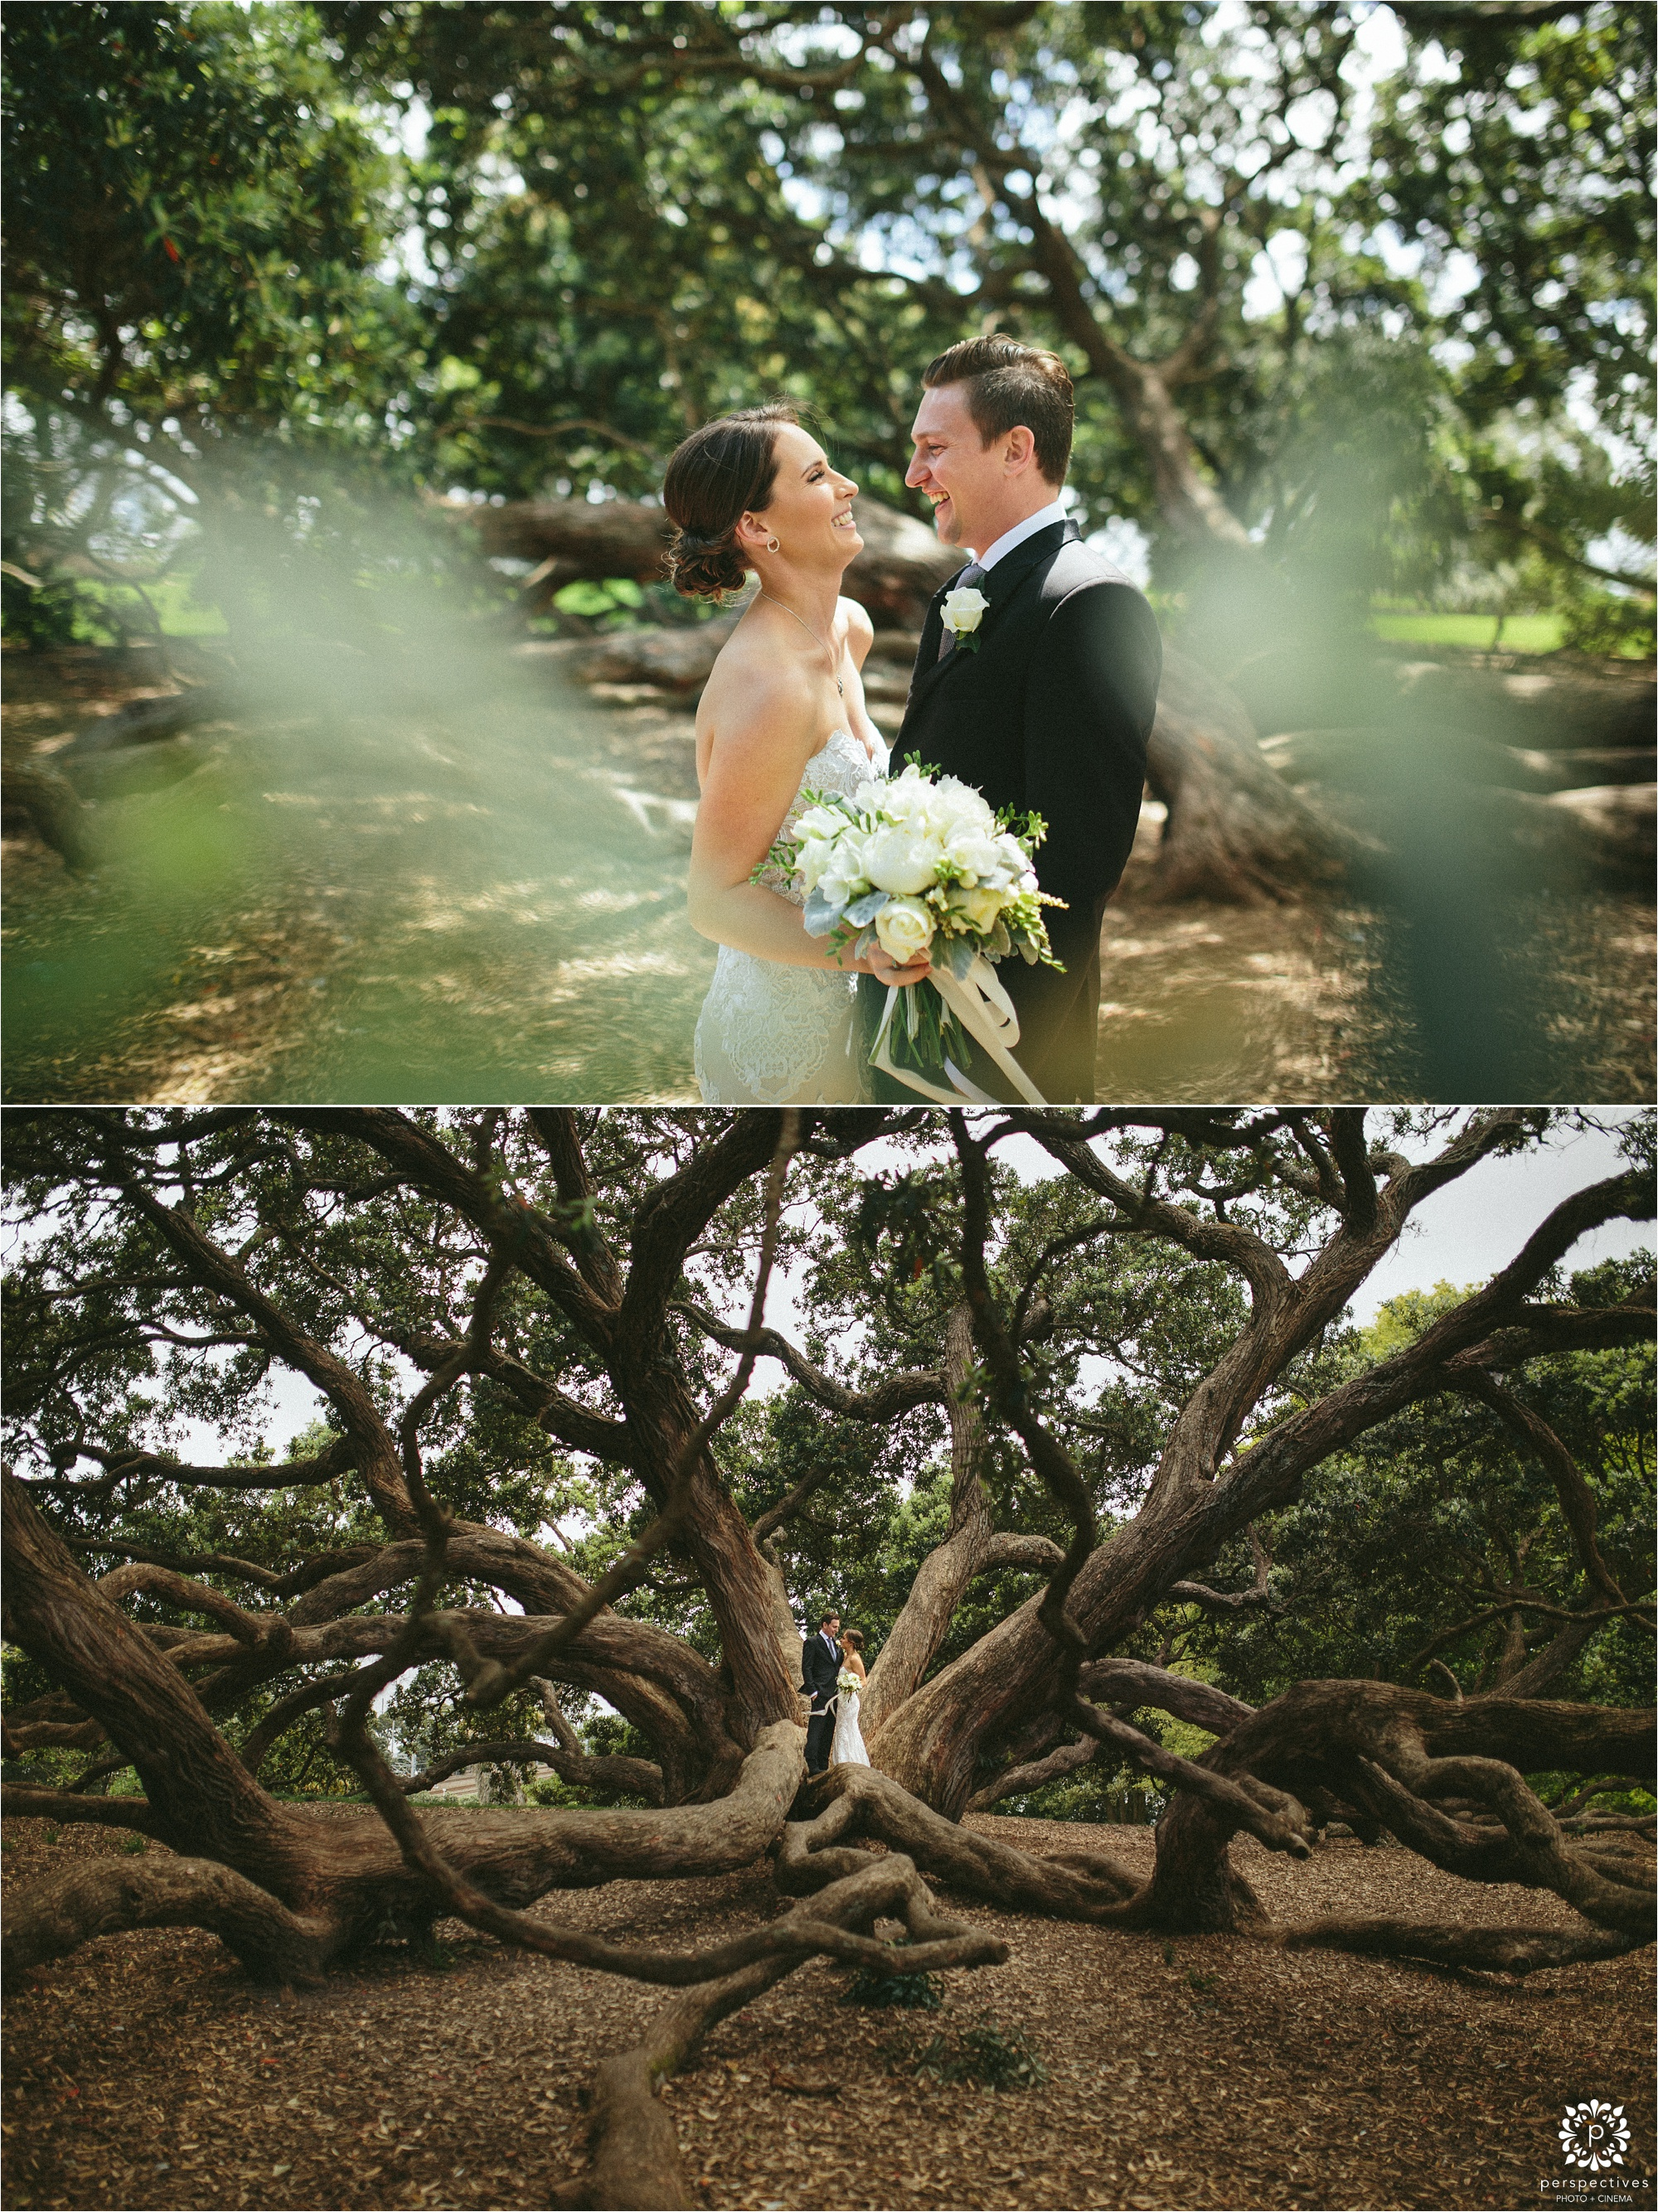 Auckland wedding photo locations